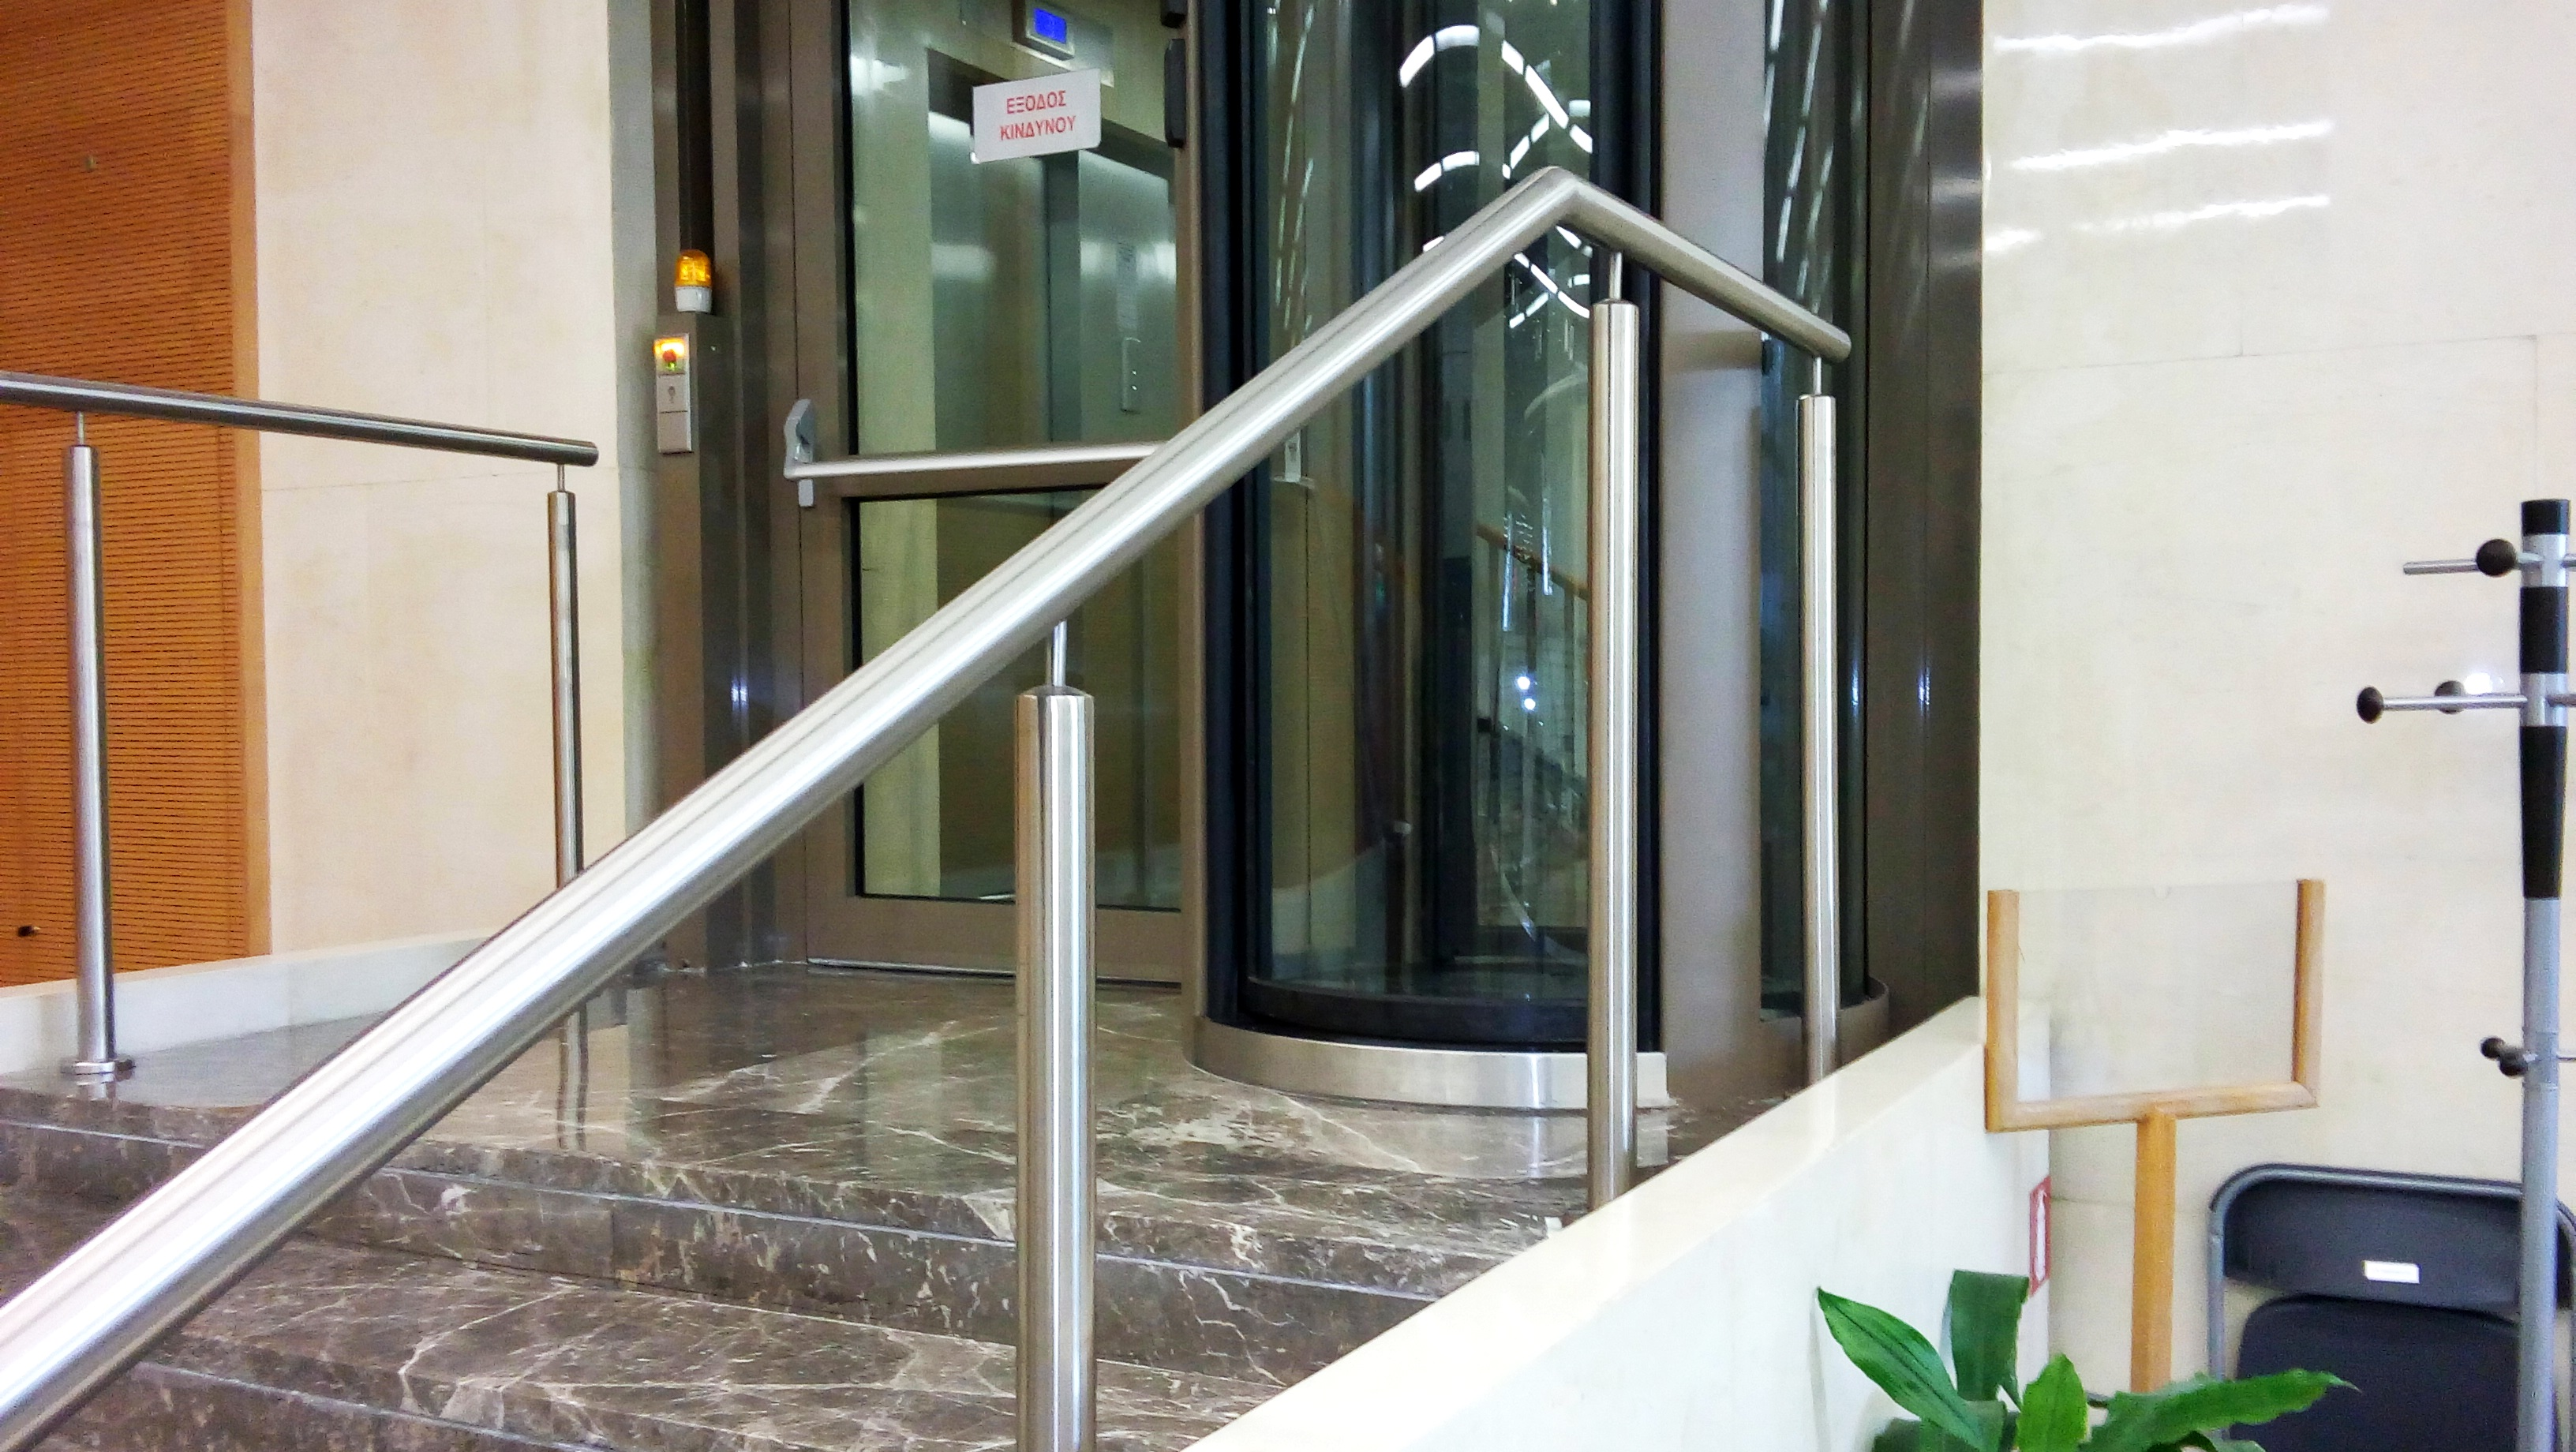 stavrianos_stainless_steel_railings_bank_of_greece